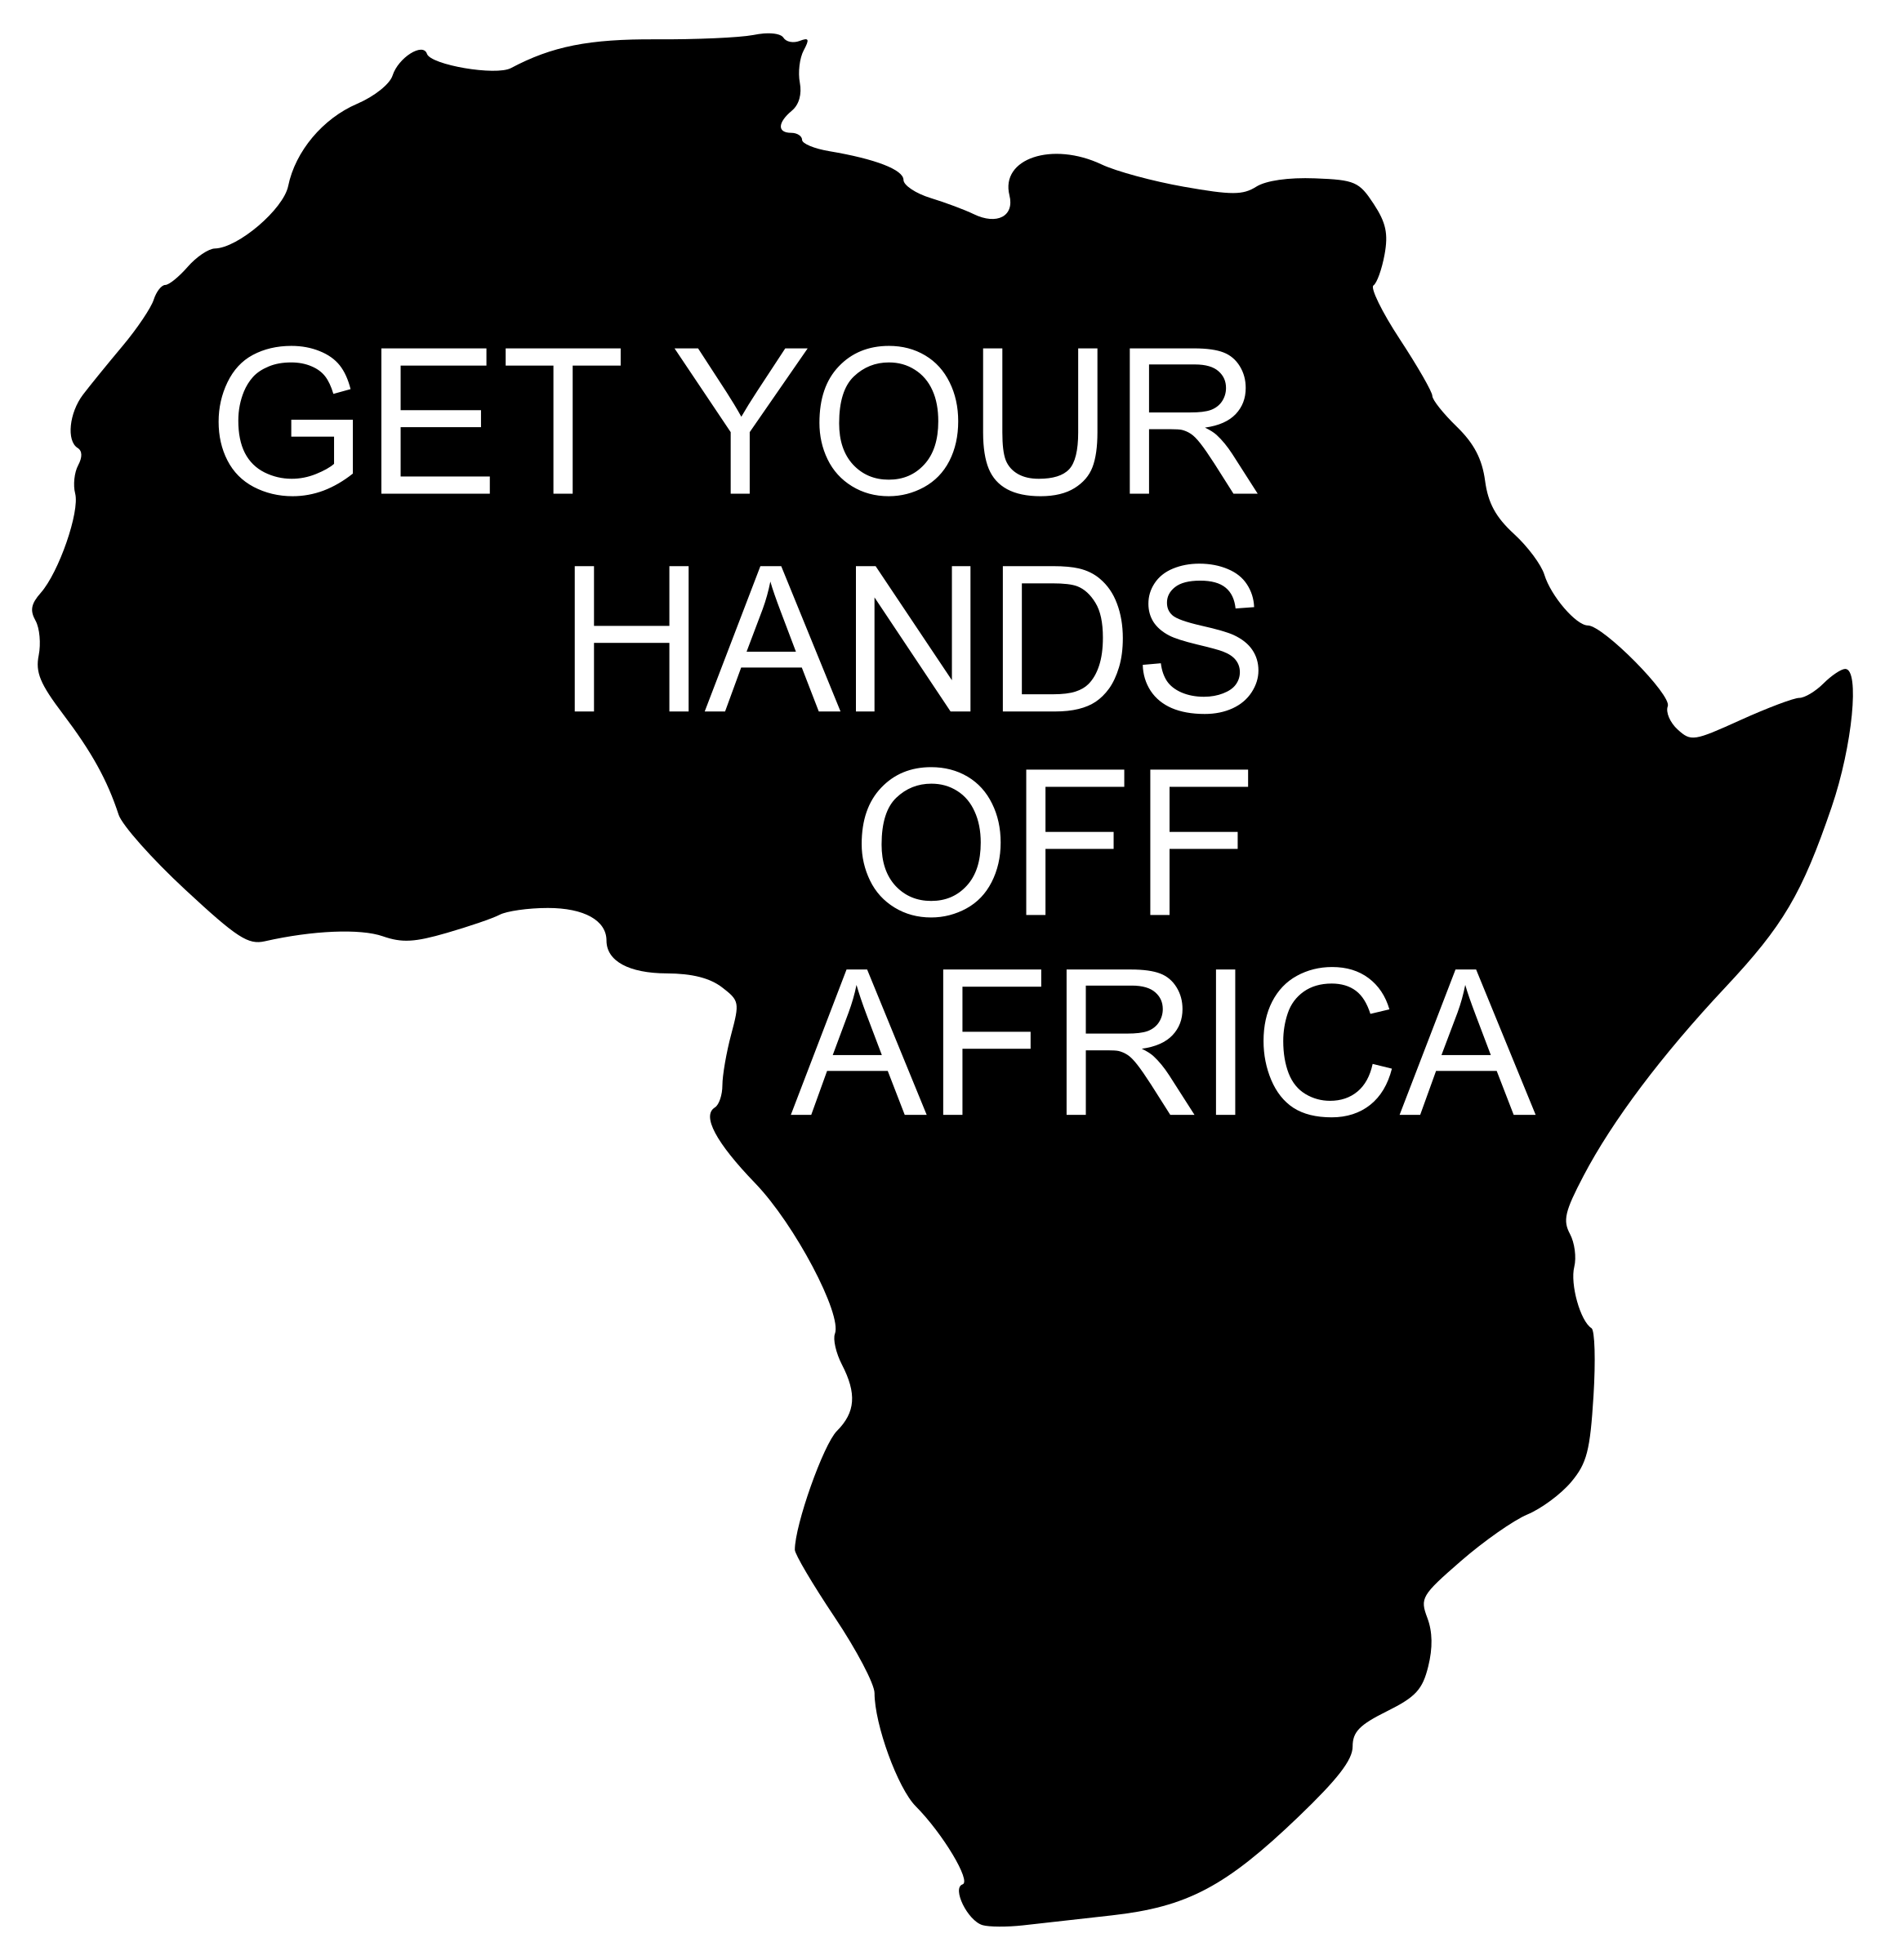 African clipart logo. Get your hands off